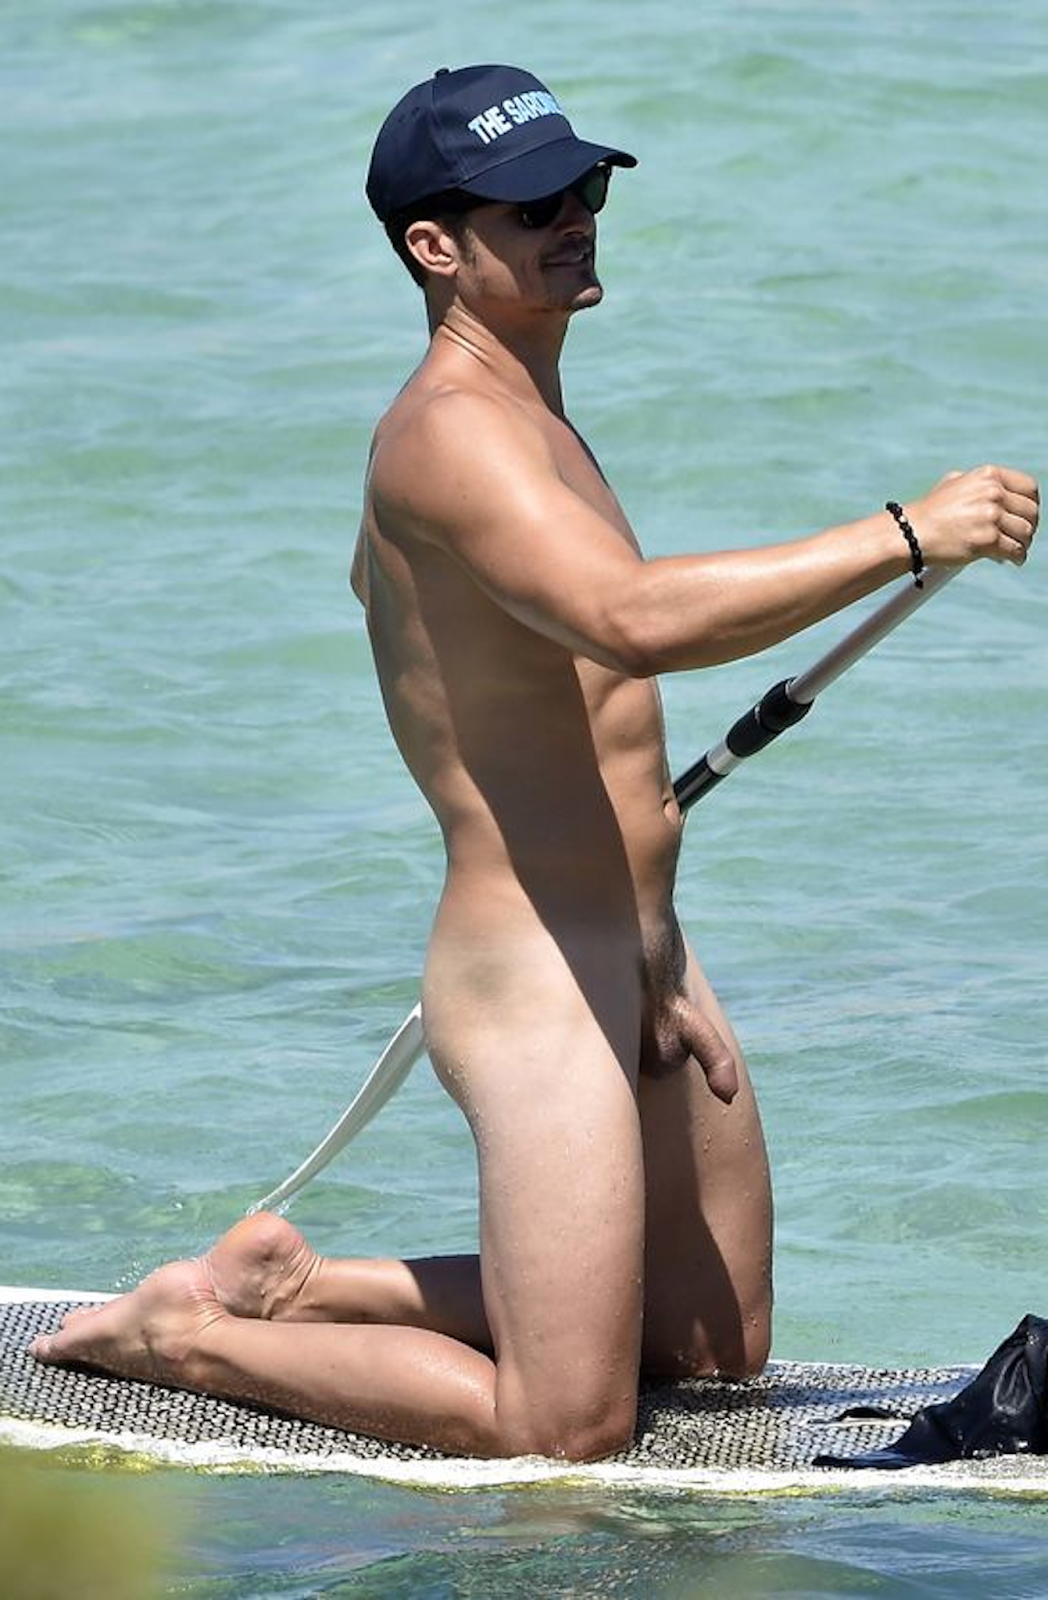 Nude Pictures Of Orlando Bloom Uncensored